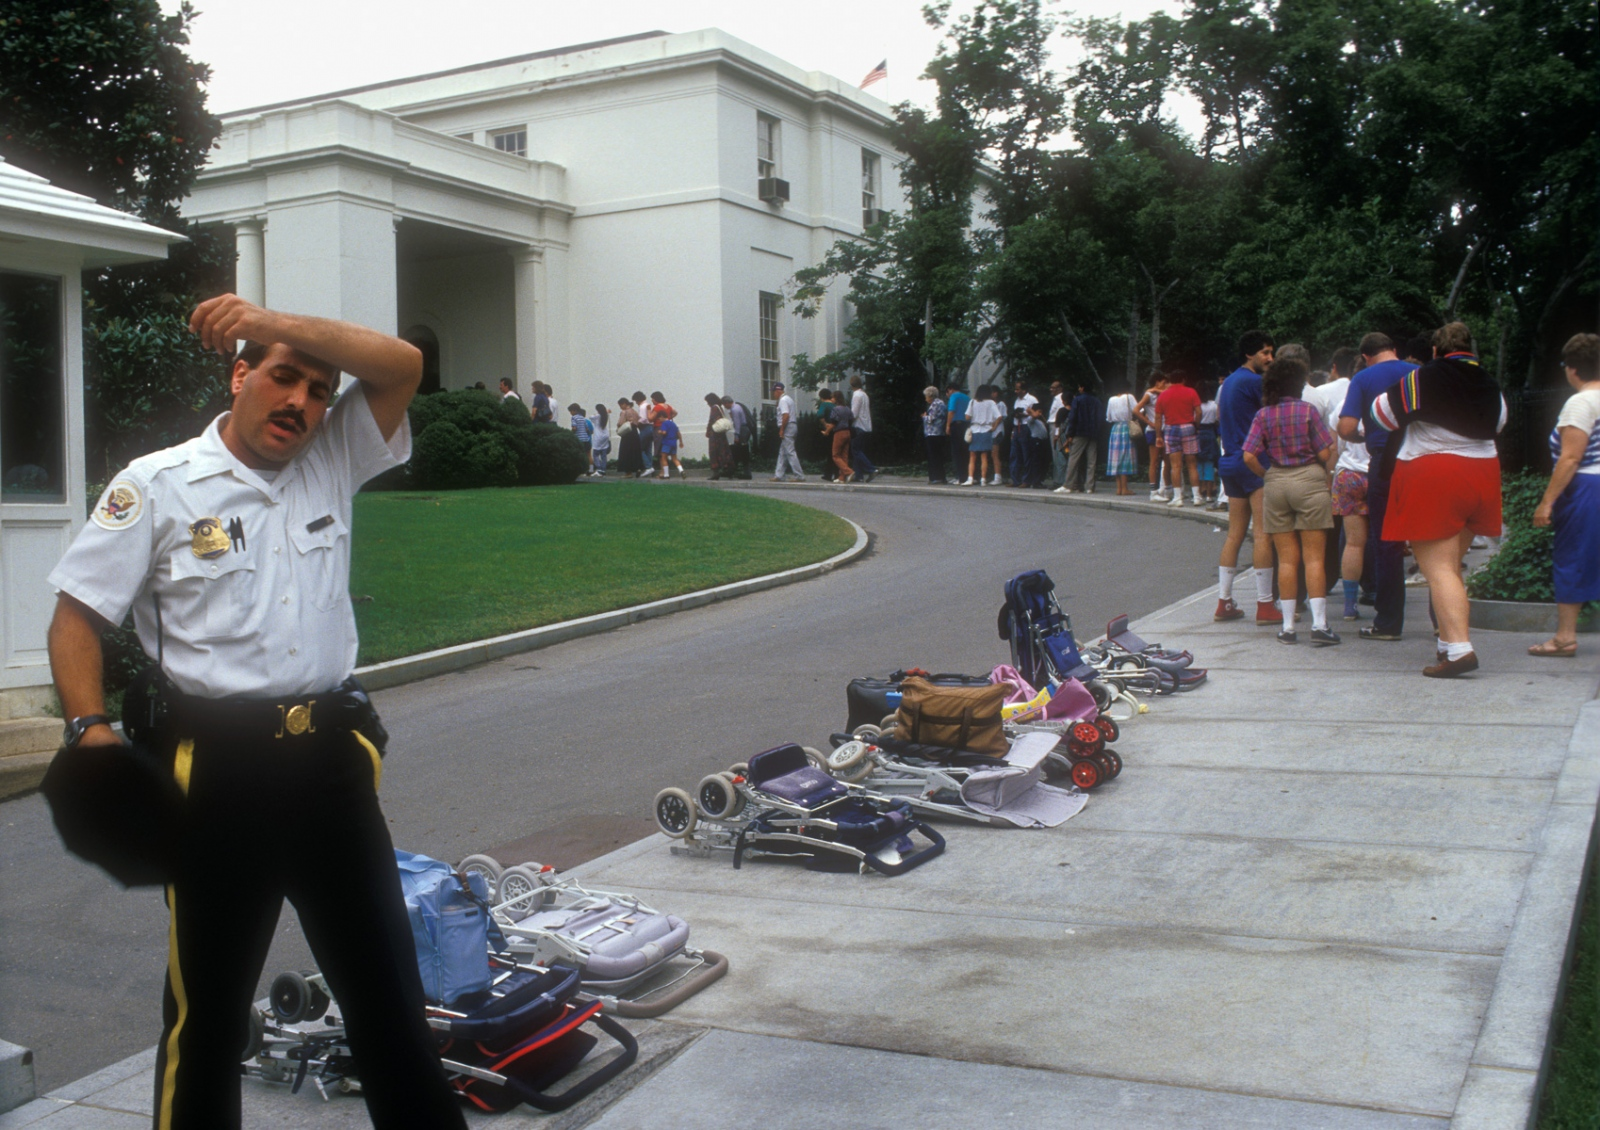 More than 6,000 visitors stream into the White House each day.